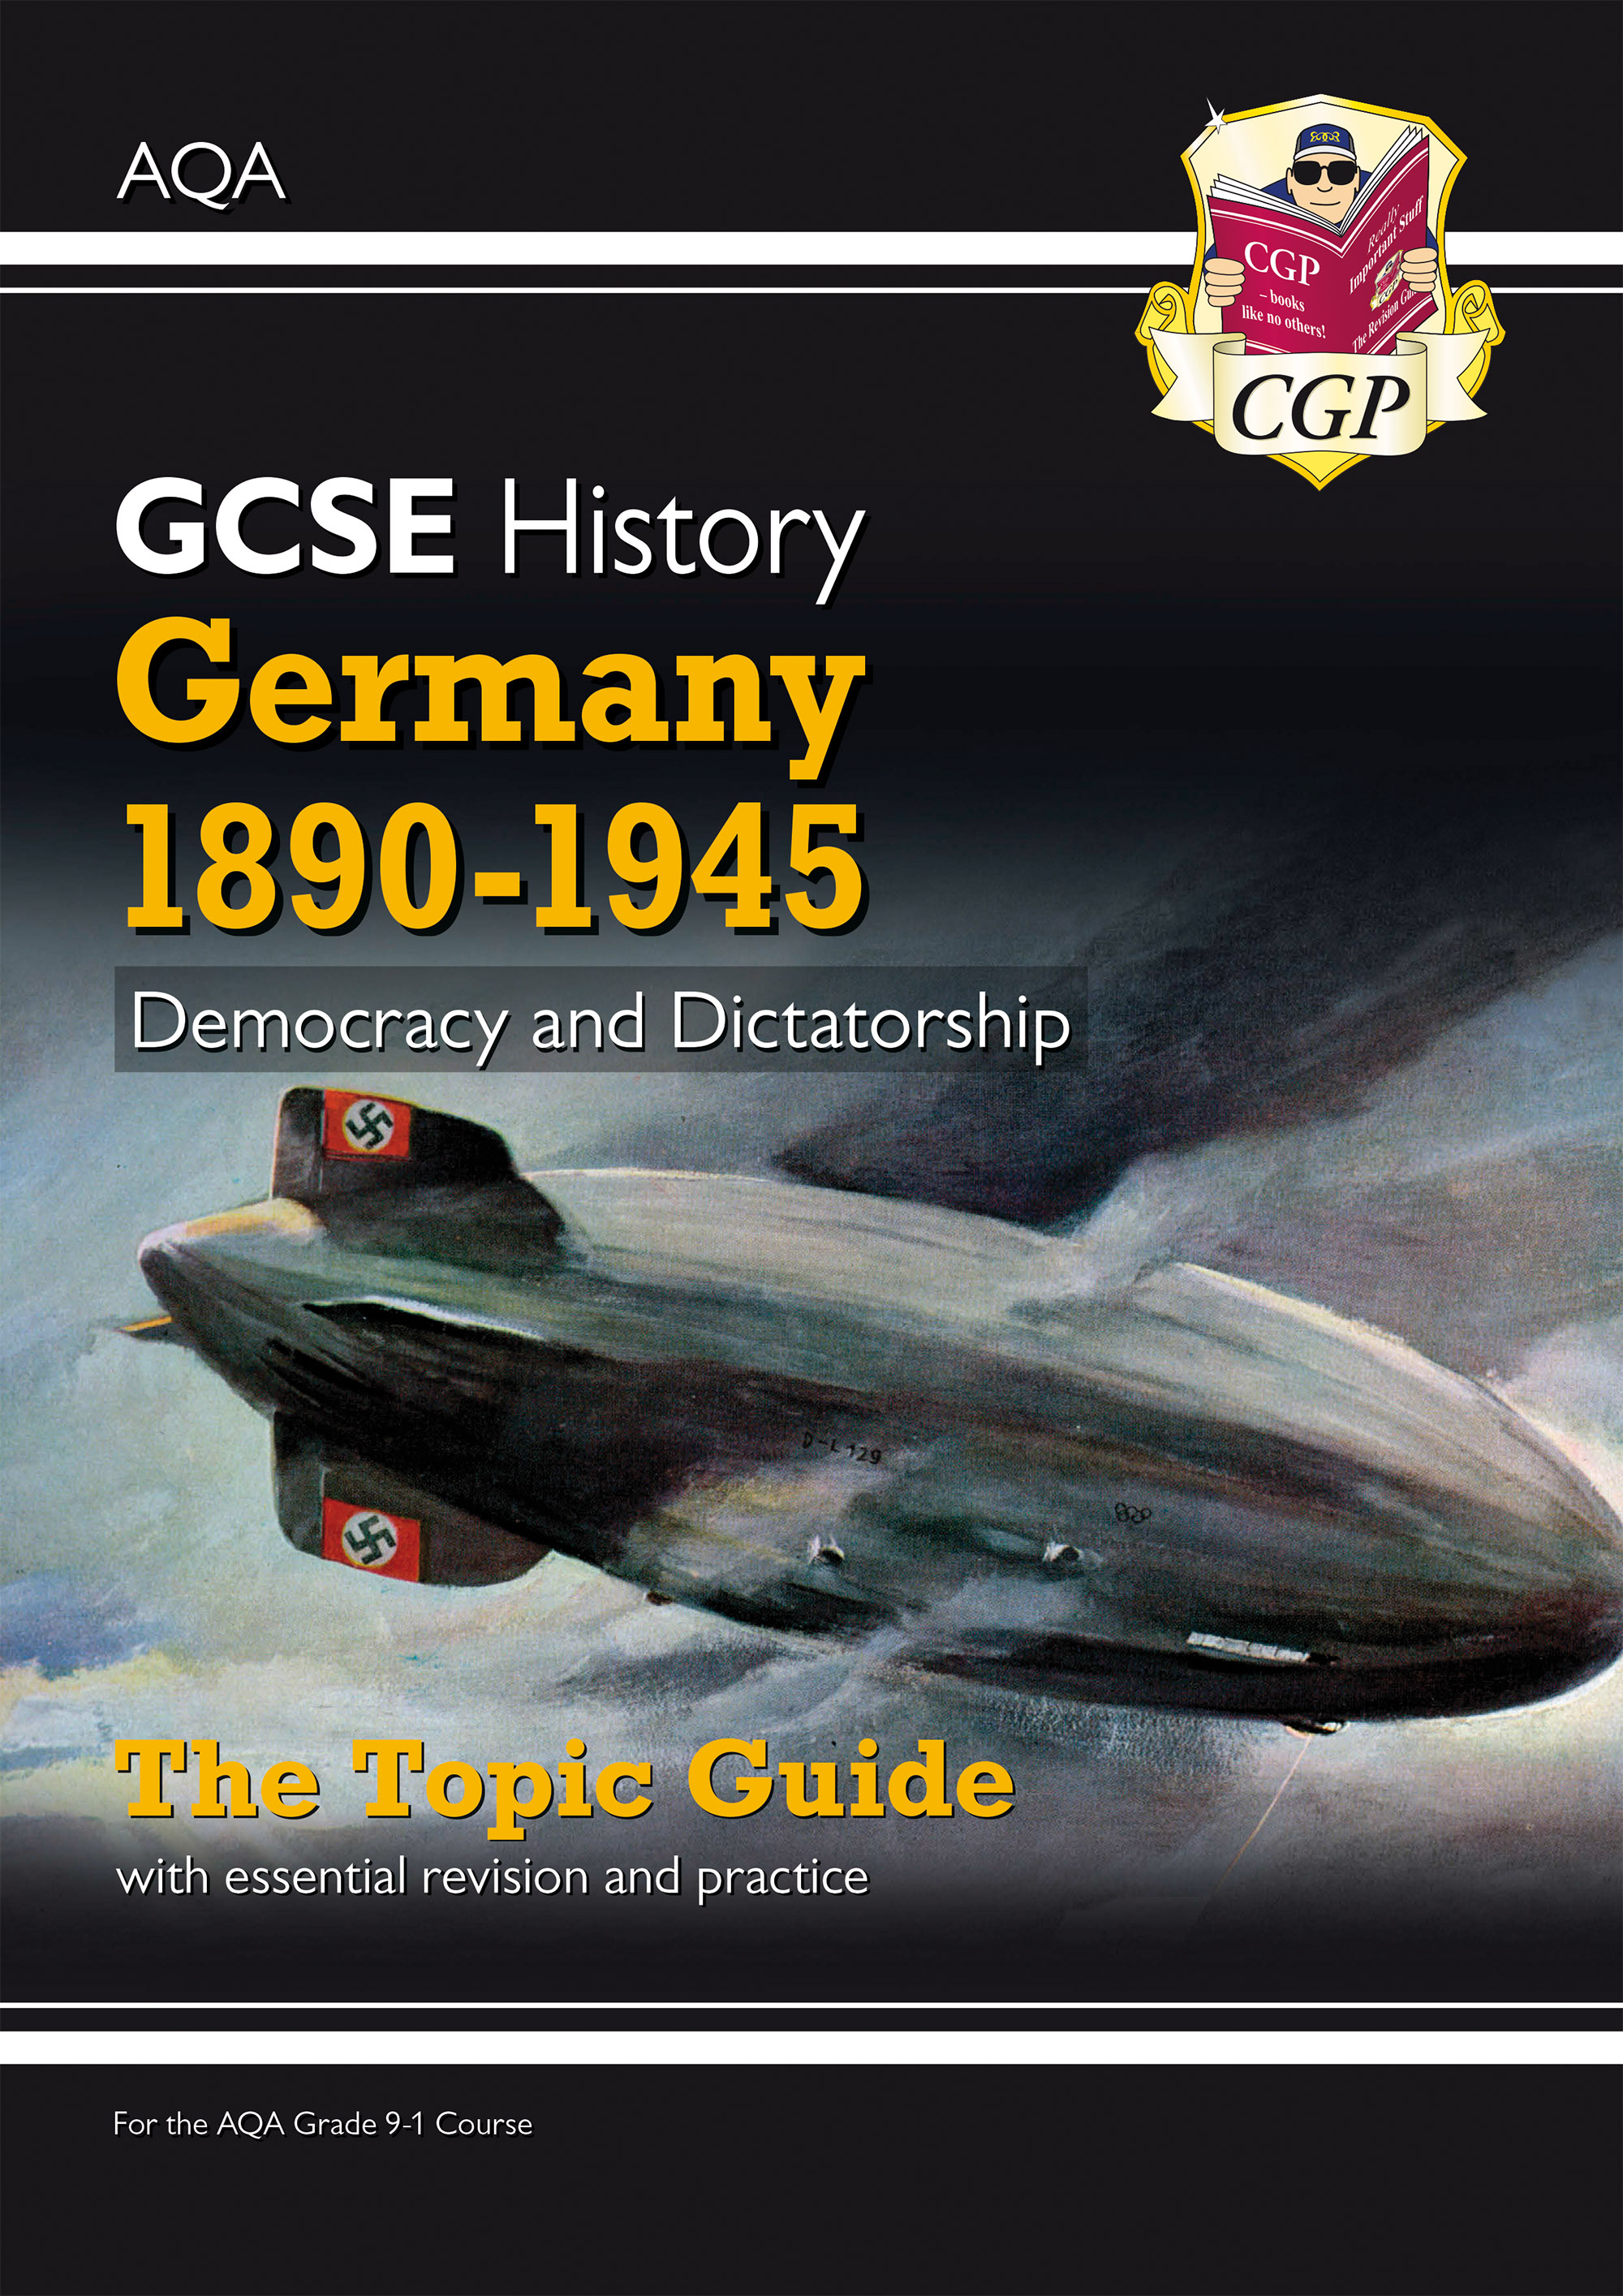 HAGEO41DK - New Grade 9-1 GCSE History AQA Topic Guide - Germany, 1890-1945: Democracy and Dictators